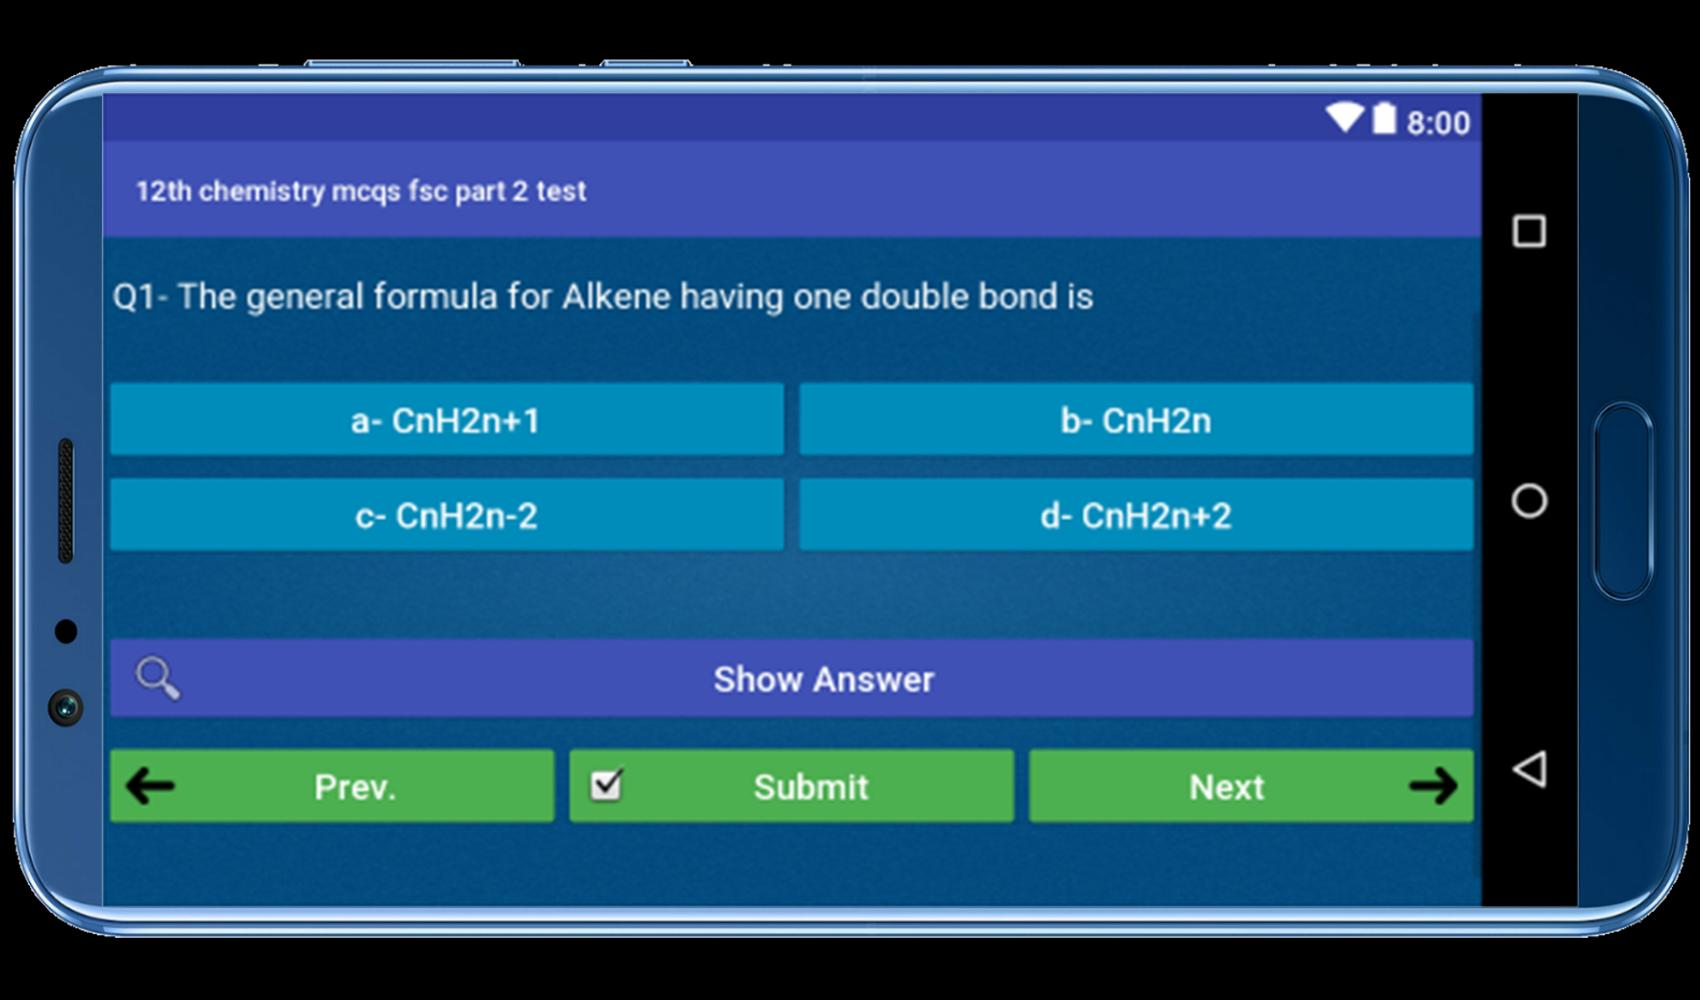 12th chemistry mcqs fsc part 2 test for Android - APK Download